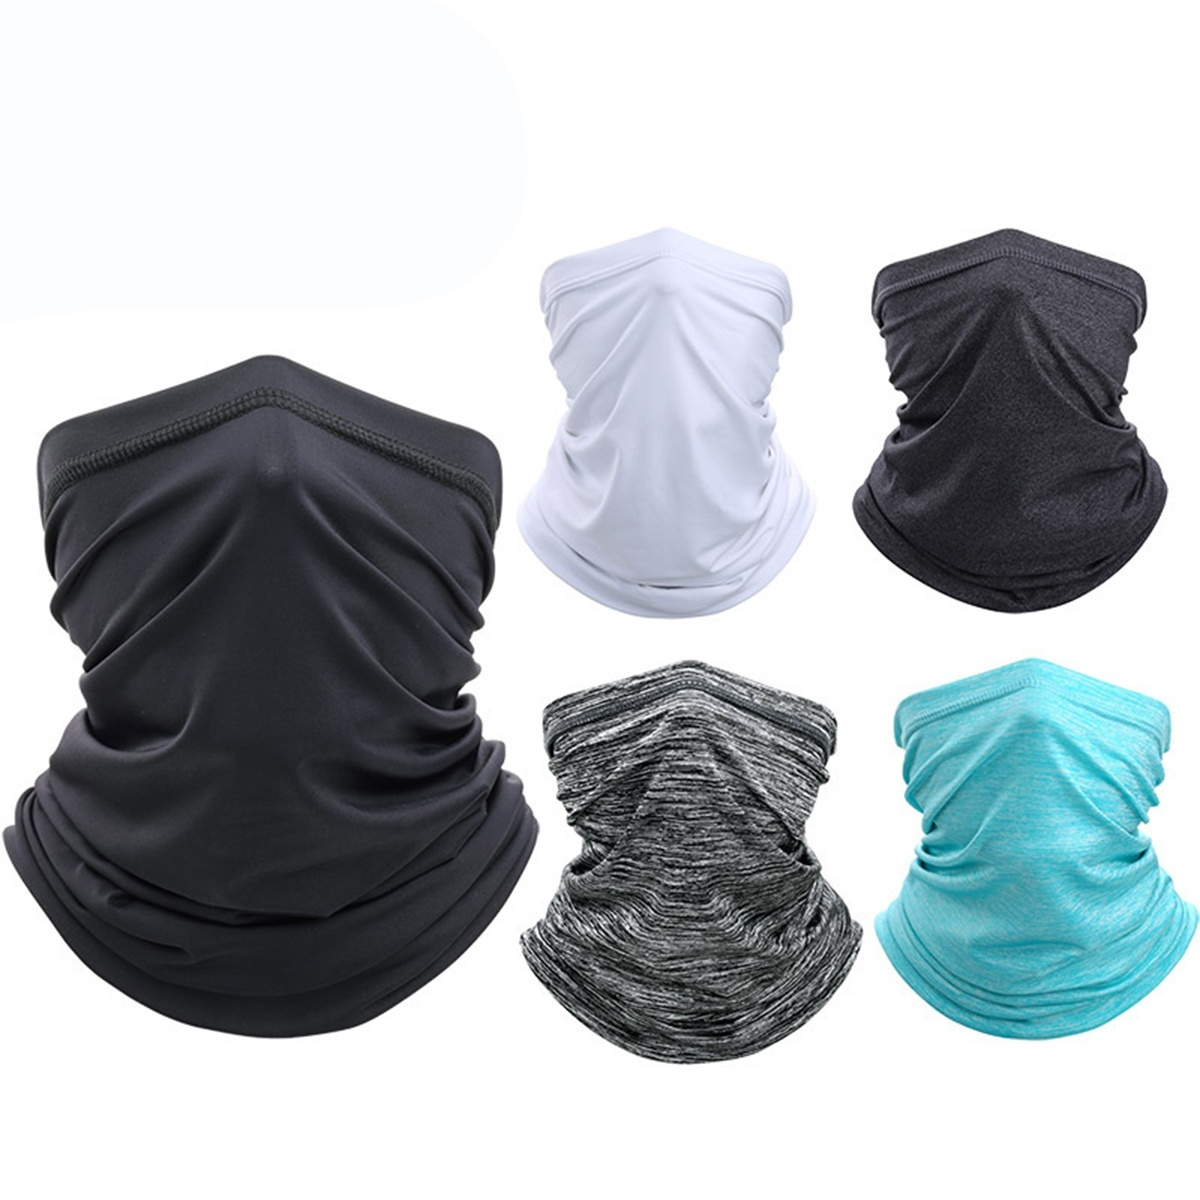 Unisex Neck Gaiter Sport Cycling Bandanas Dustproof Face Cover Scarf with Filter